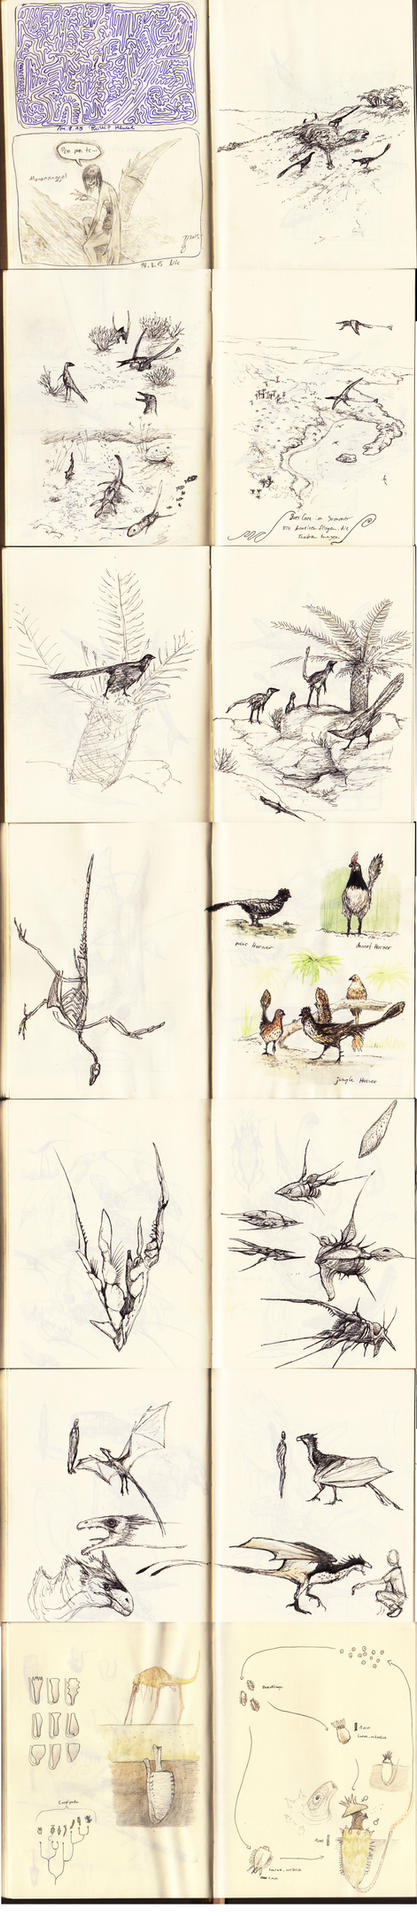 Sketches from Sketchbook No. 14 and 15 by Hyrotrioskjan